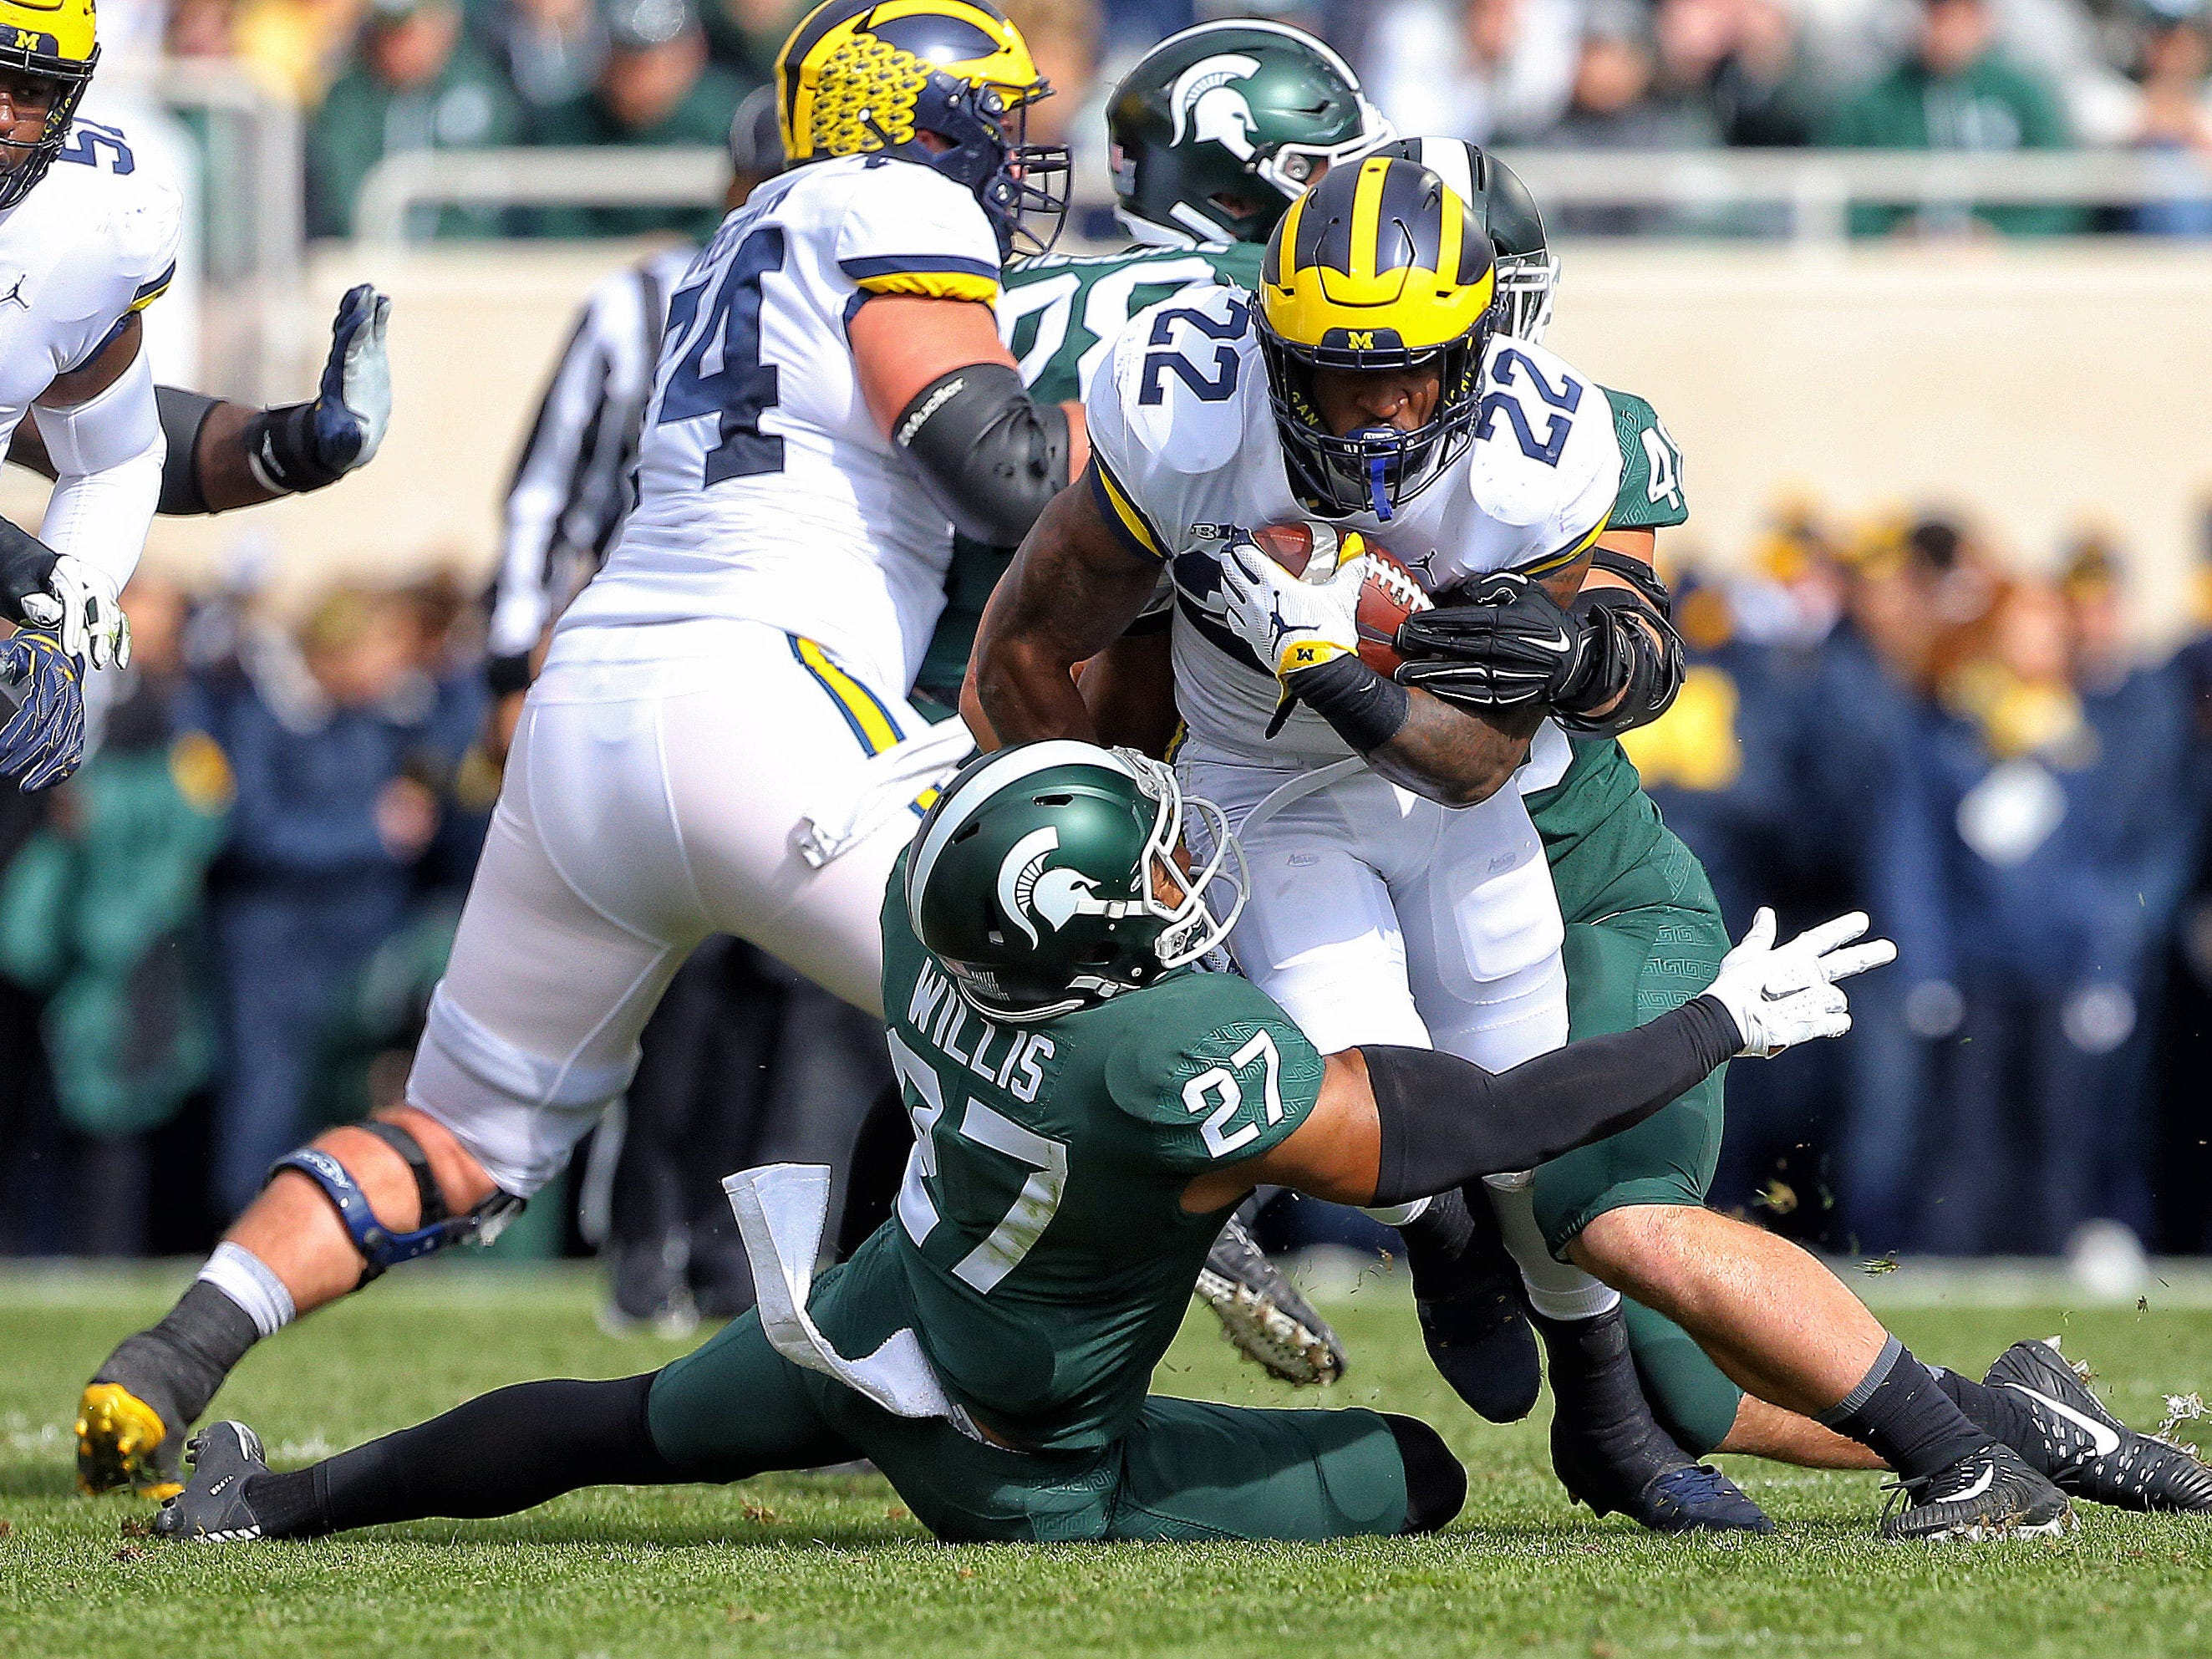 Michigan Wolverines running back Karan Higdon (22) runs though the tackle of Michigan State Spartans safety Khari Willis (27) during the first quarter at Spartan Stadium.